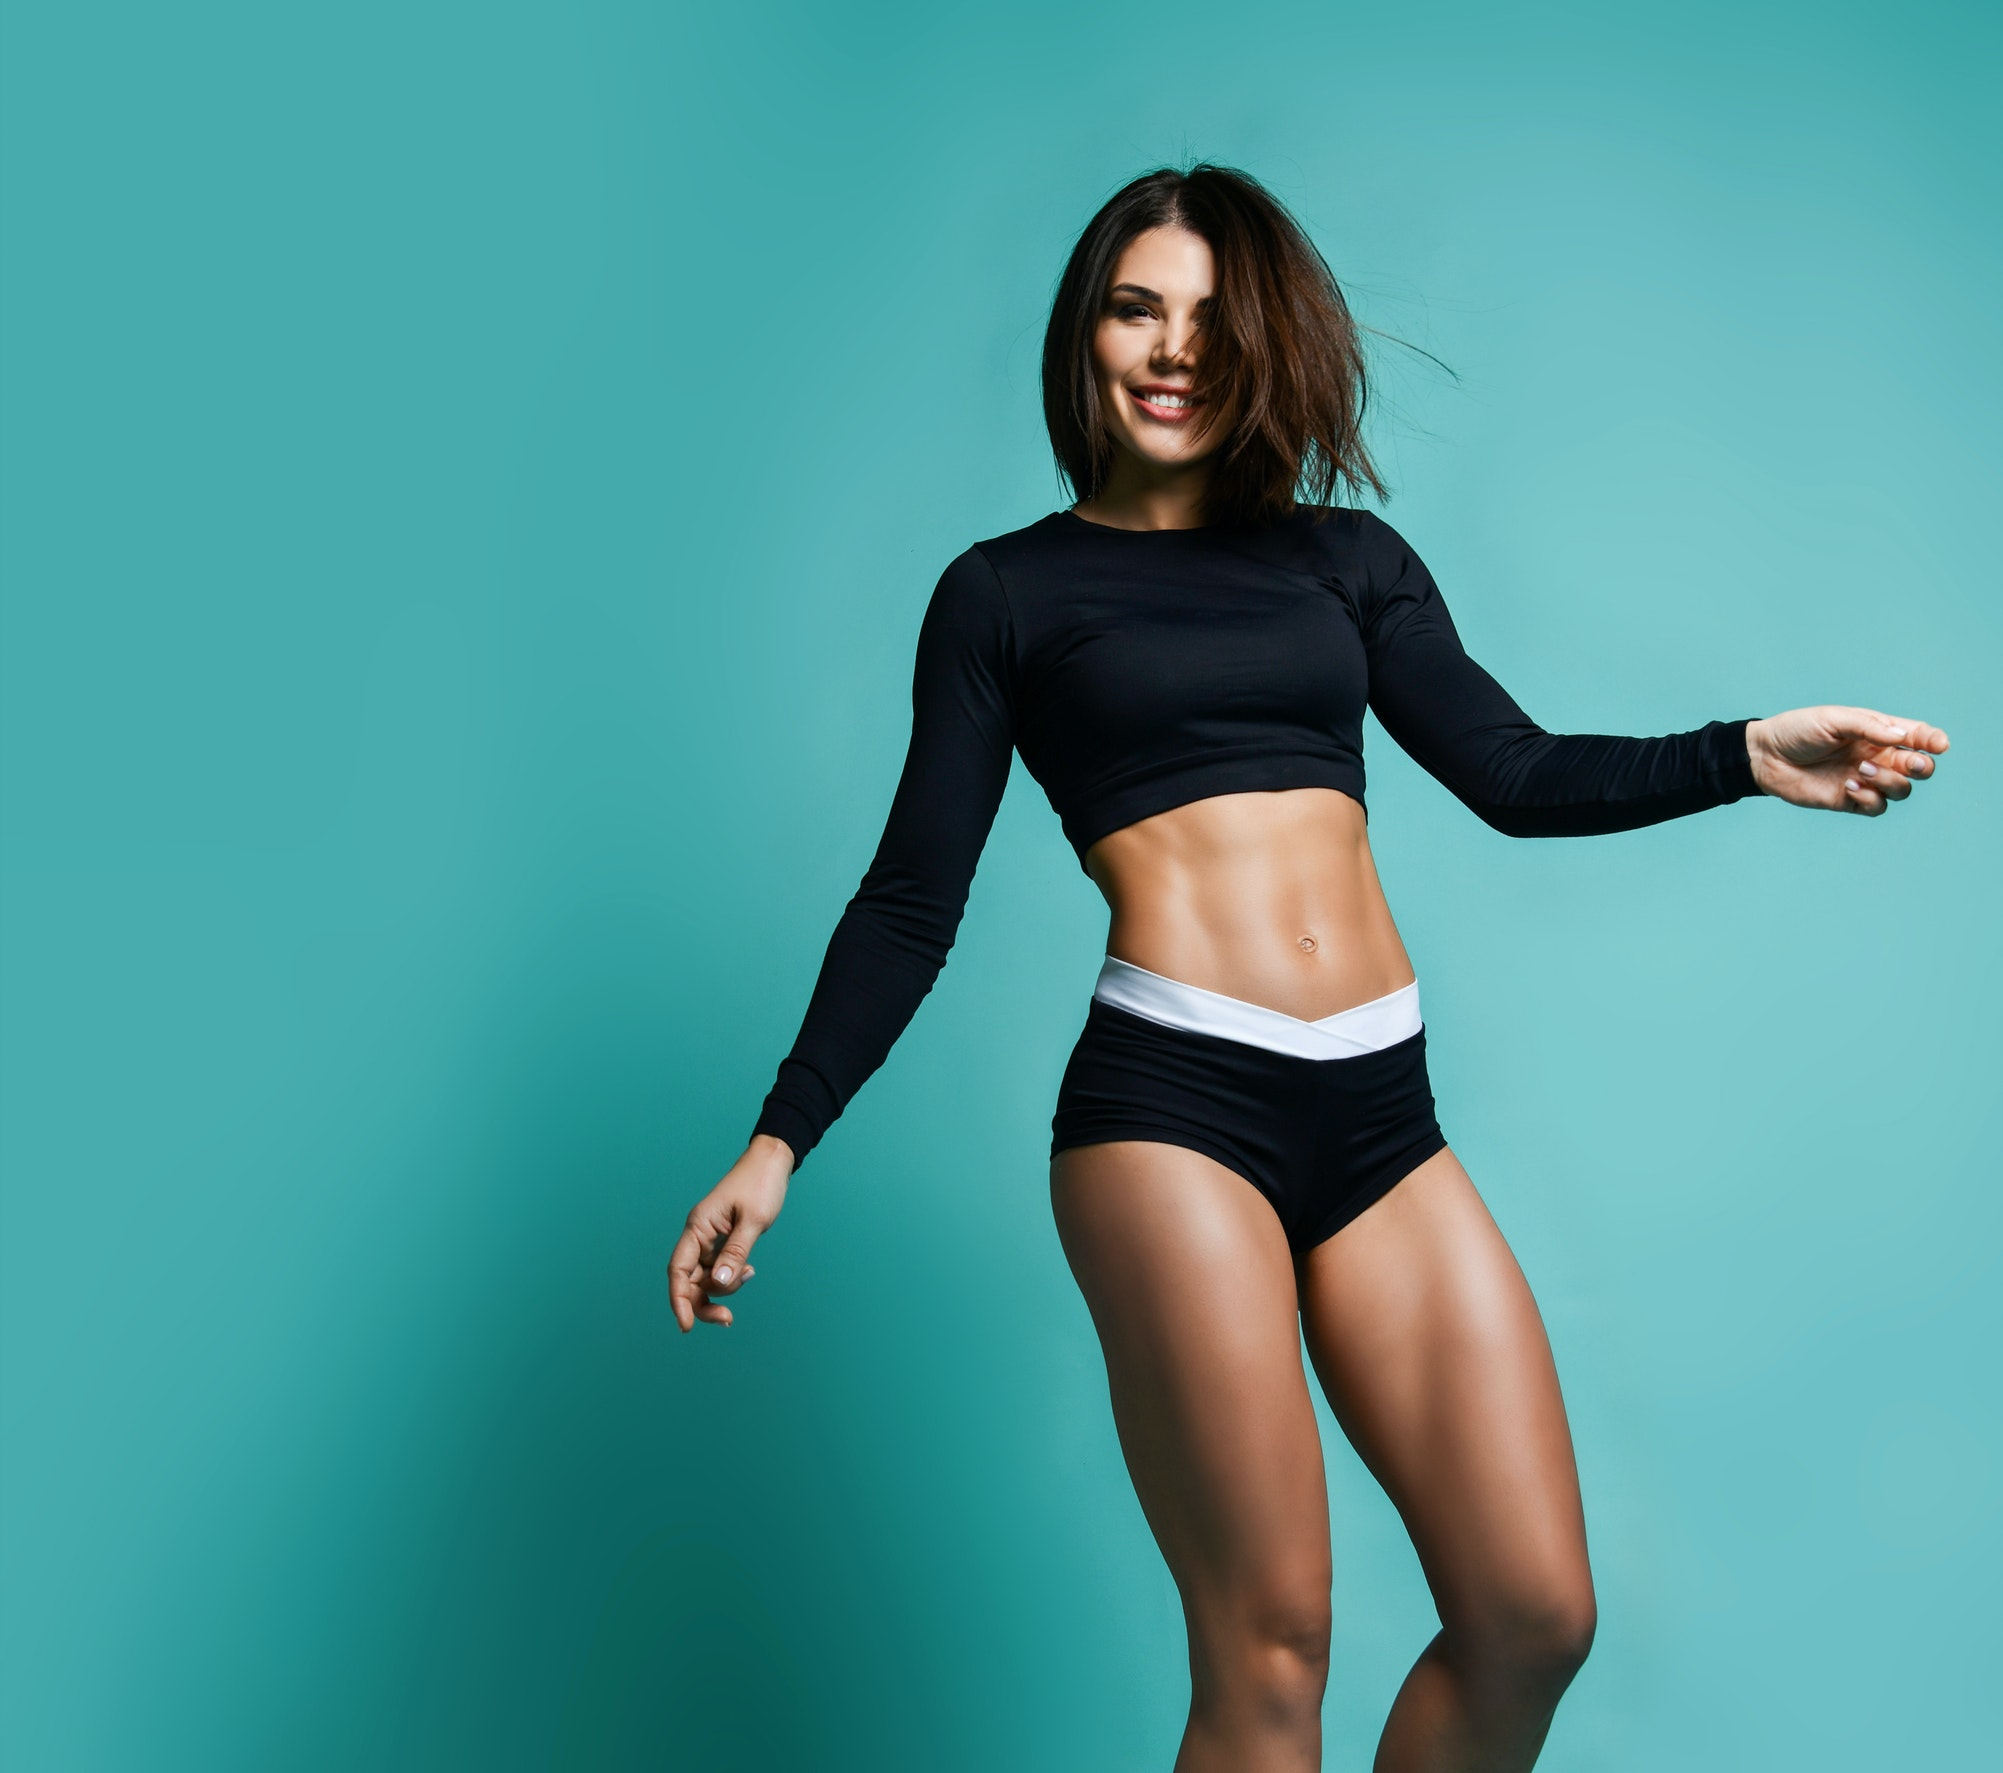 Seattle's Best Abdominal Sculpting Procedure: Forget About Lipo